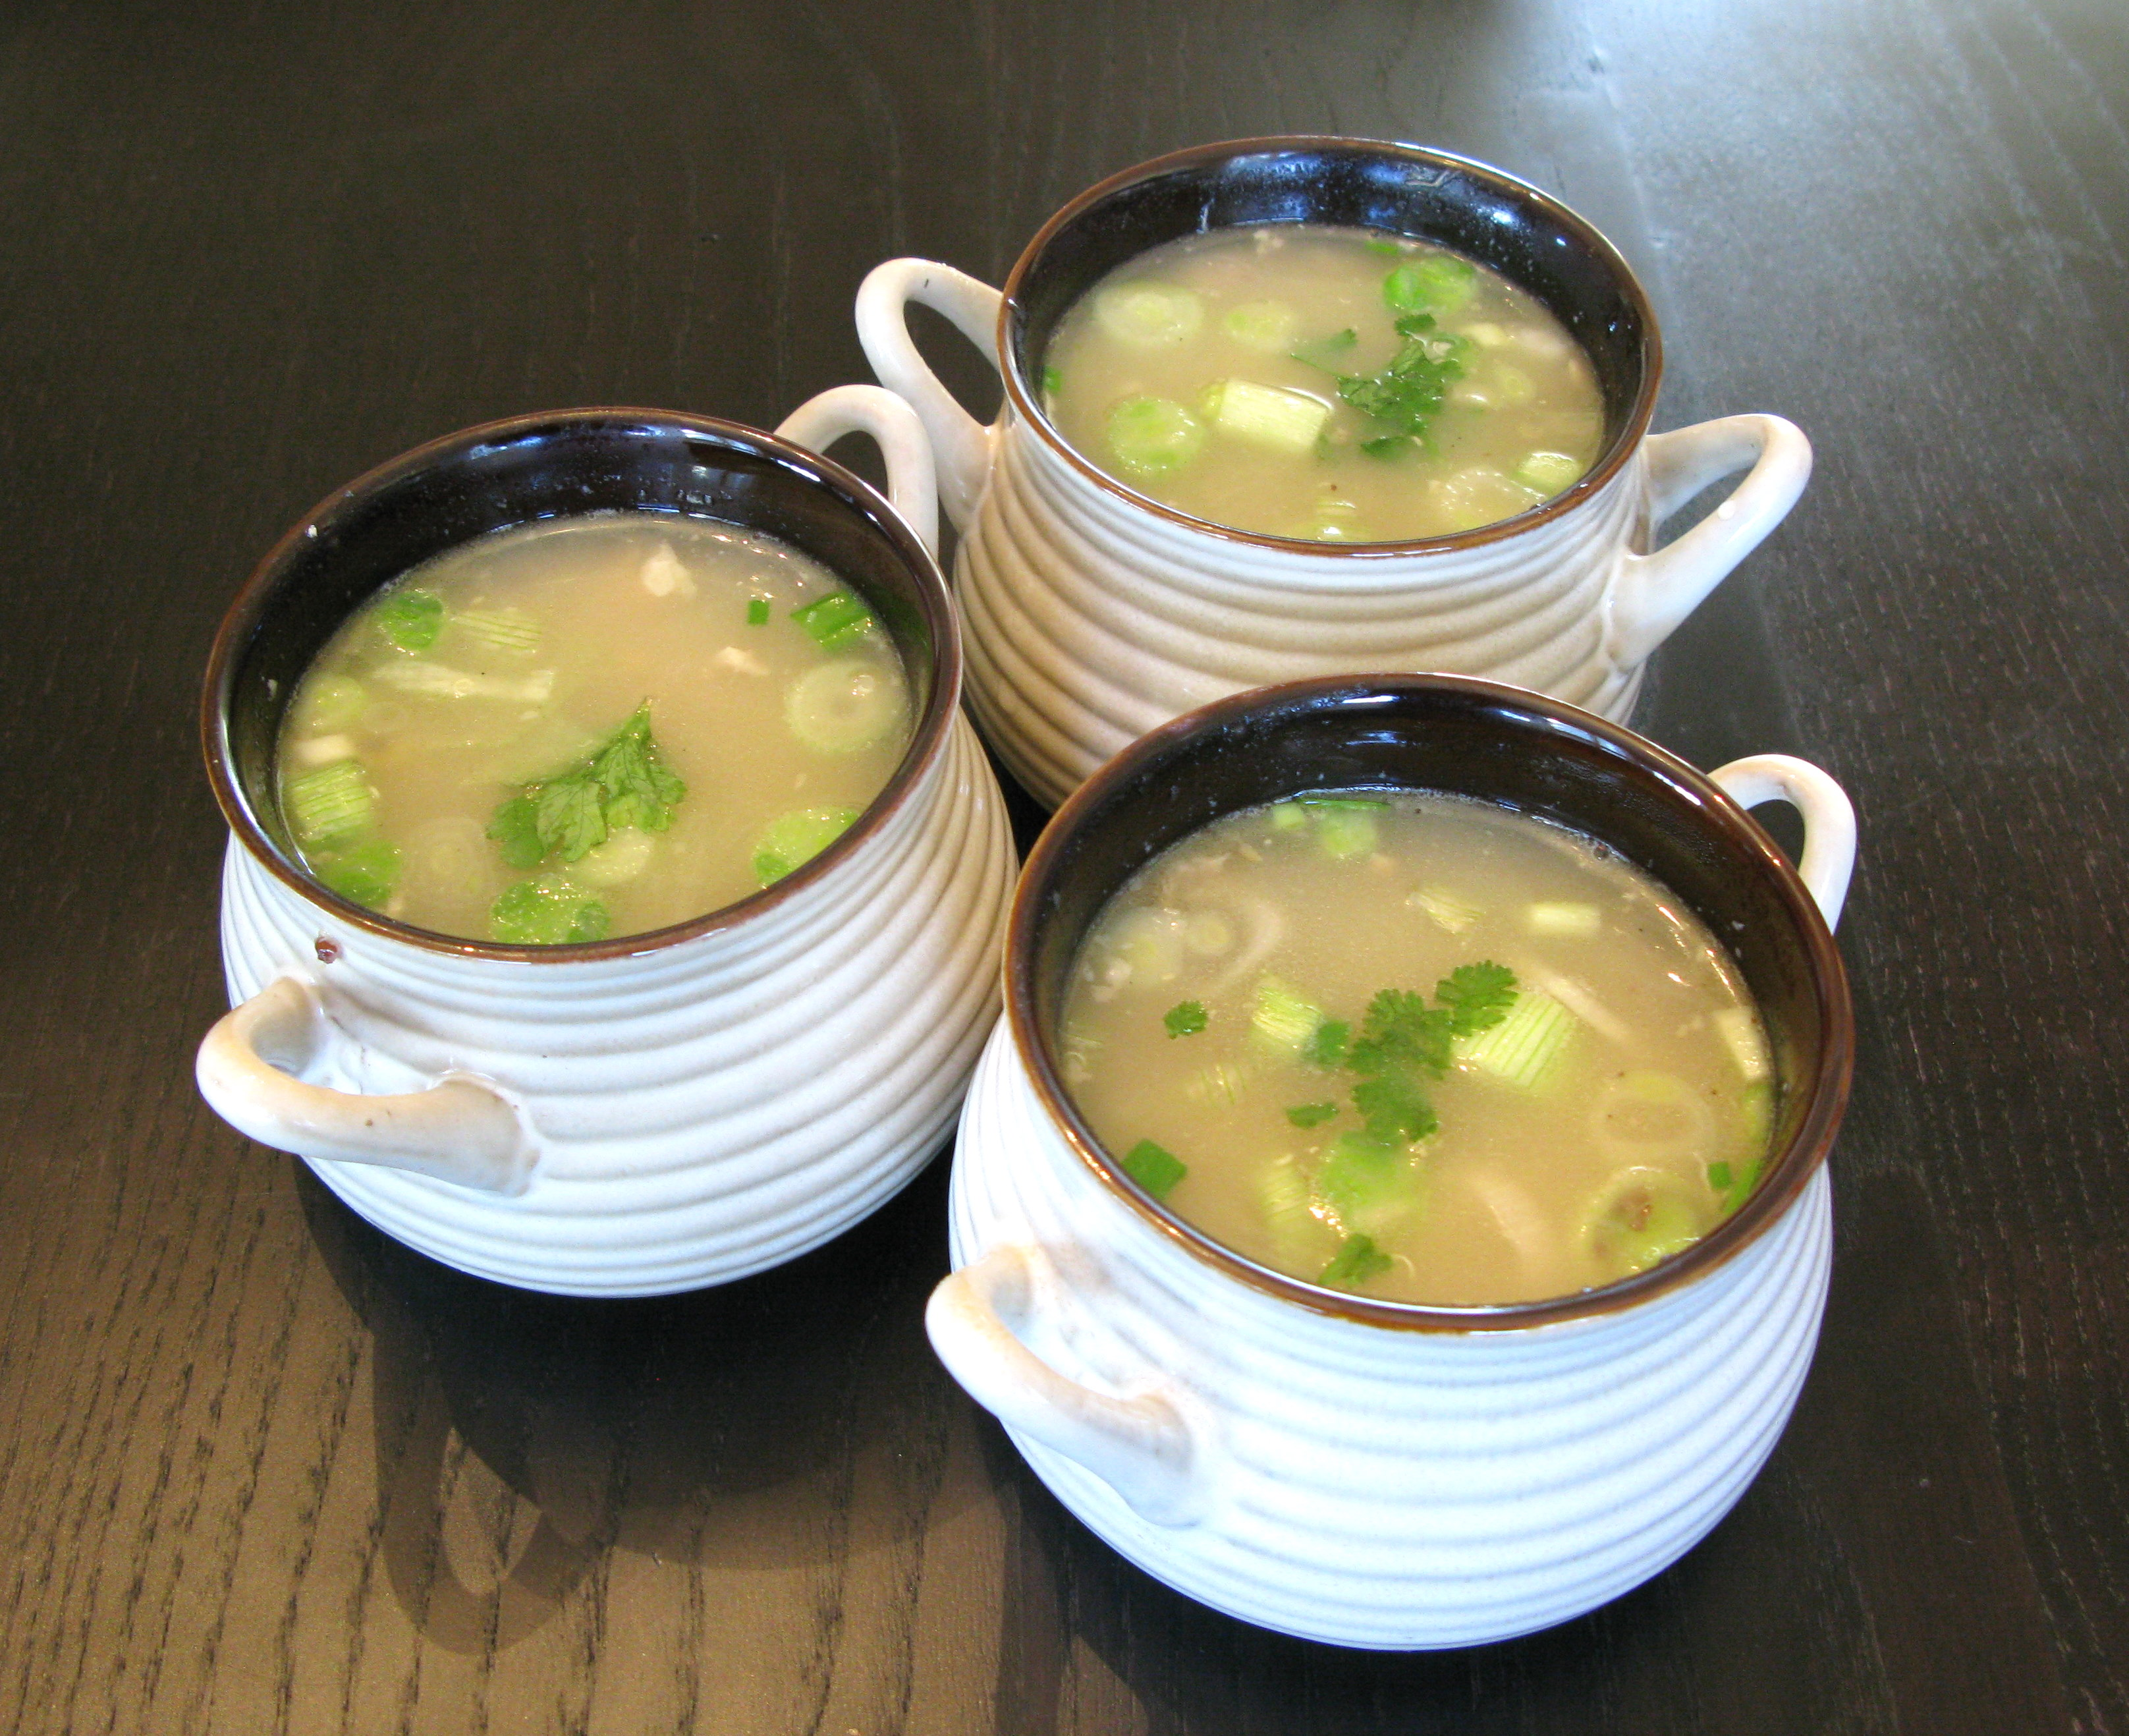 Sweet Corn Soup for those rainy days by the window